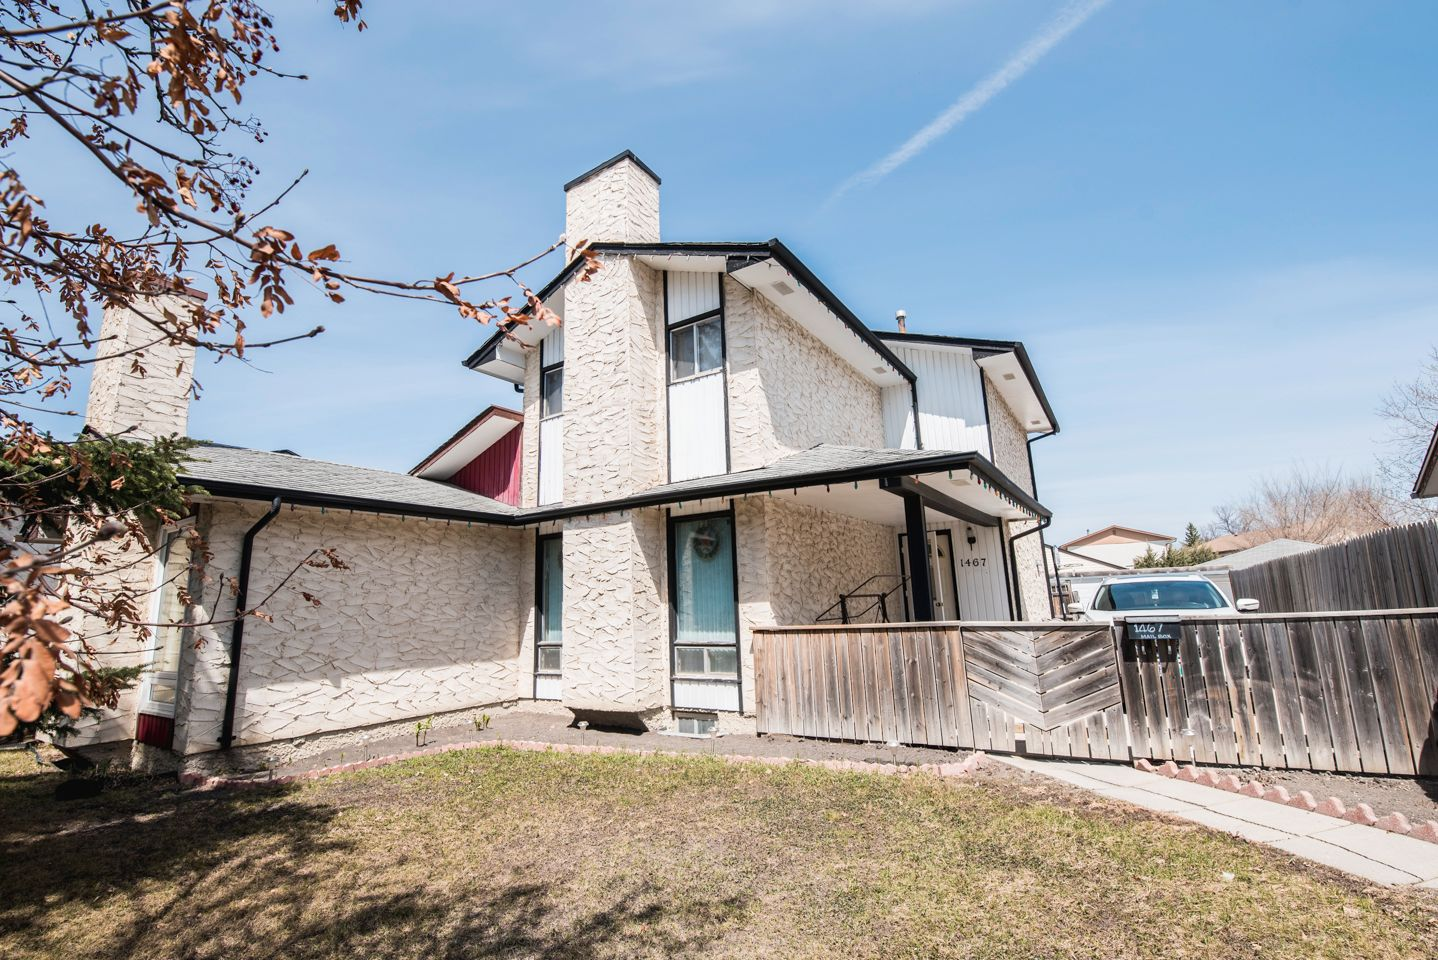 Main Photo: 1467 Jefferson Avenue in Winnipeg: Maples Single Family Attached for sale (4H)  : MLS®# 1811801